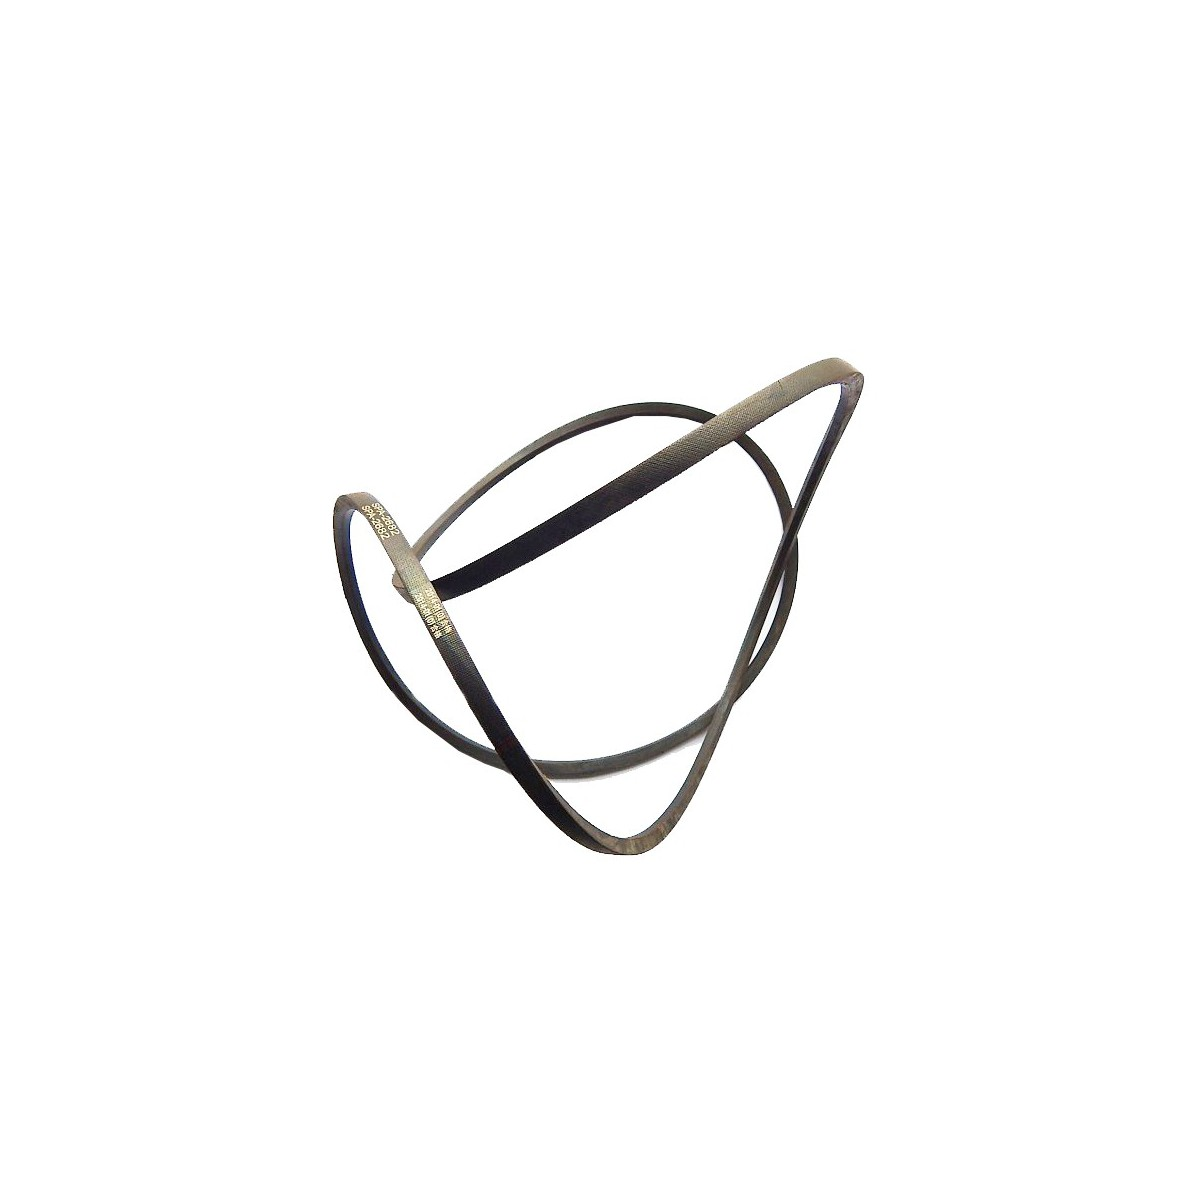 V-belt SPA2682 for RDS120 Geograss rotary mower